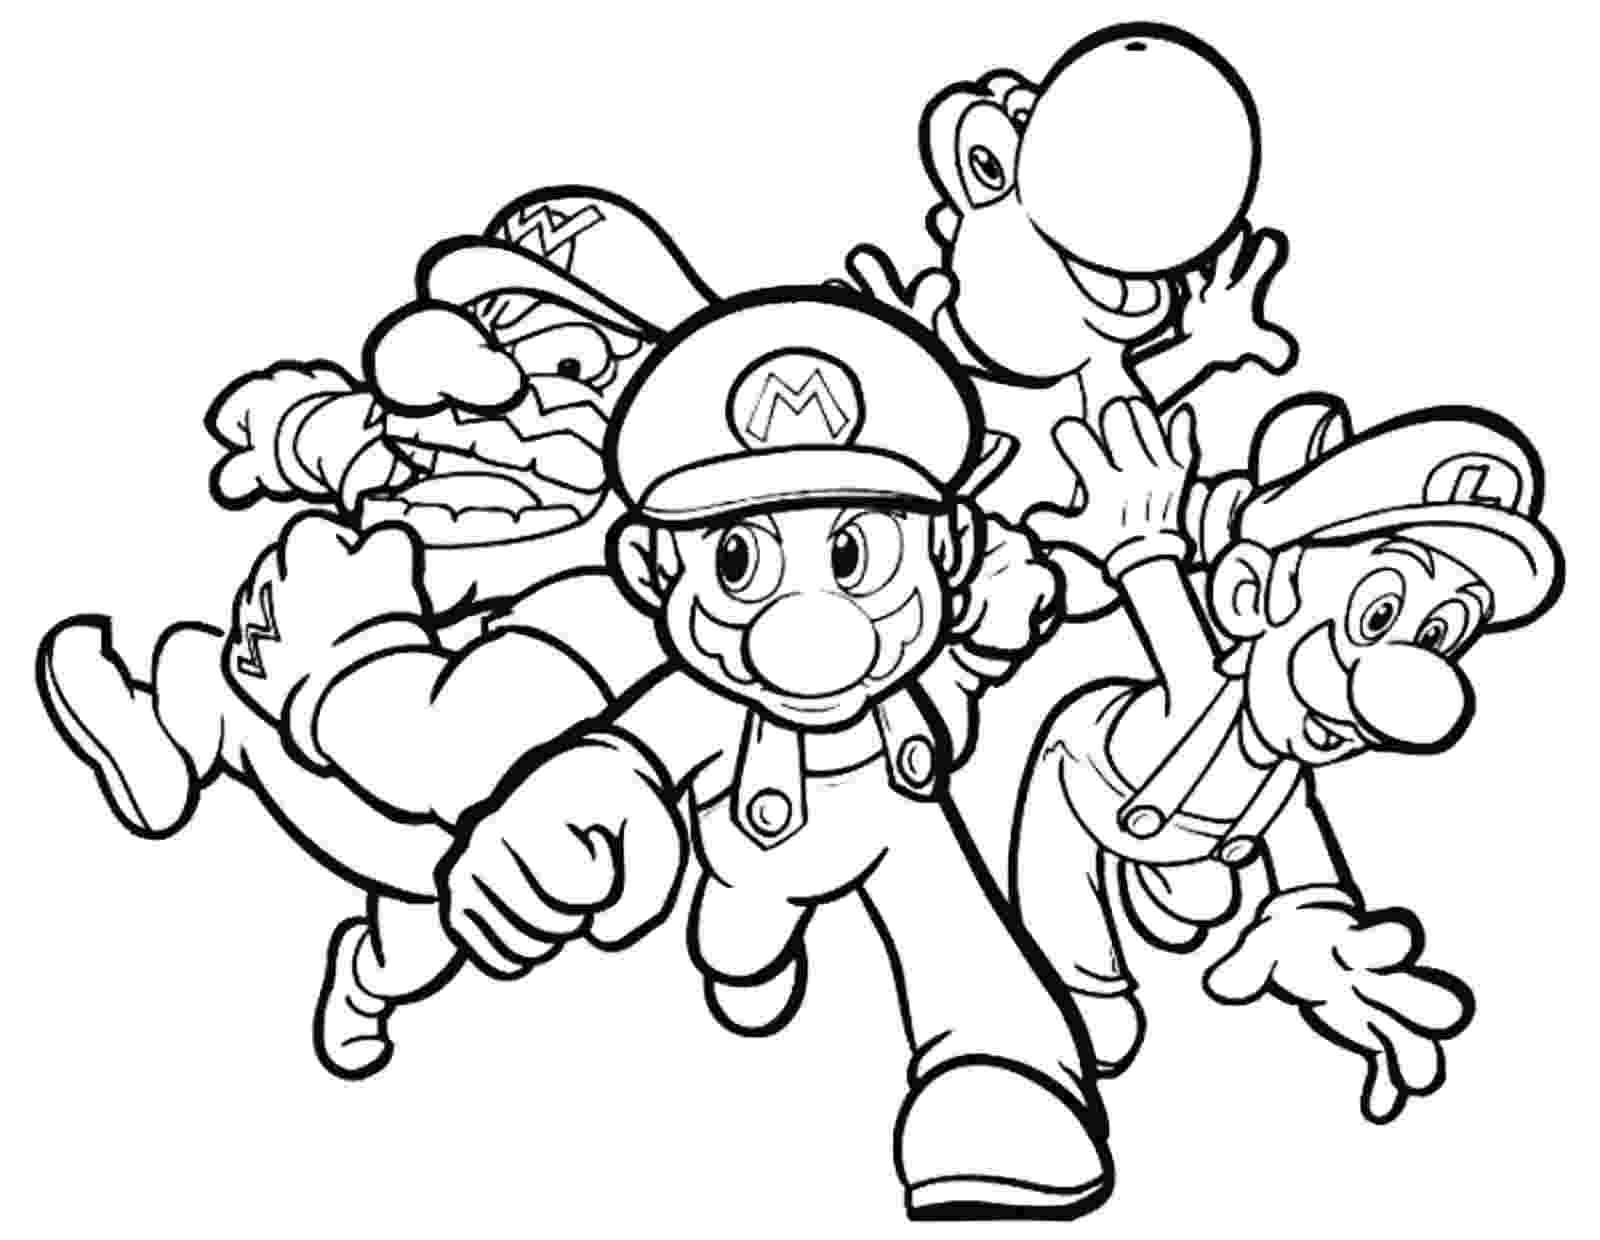 coloring games click and print to a4 colouring page coloring games